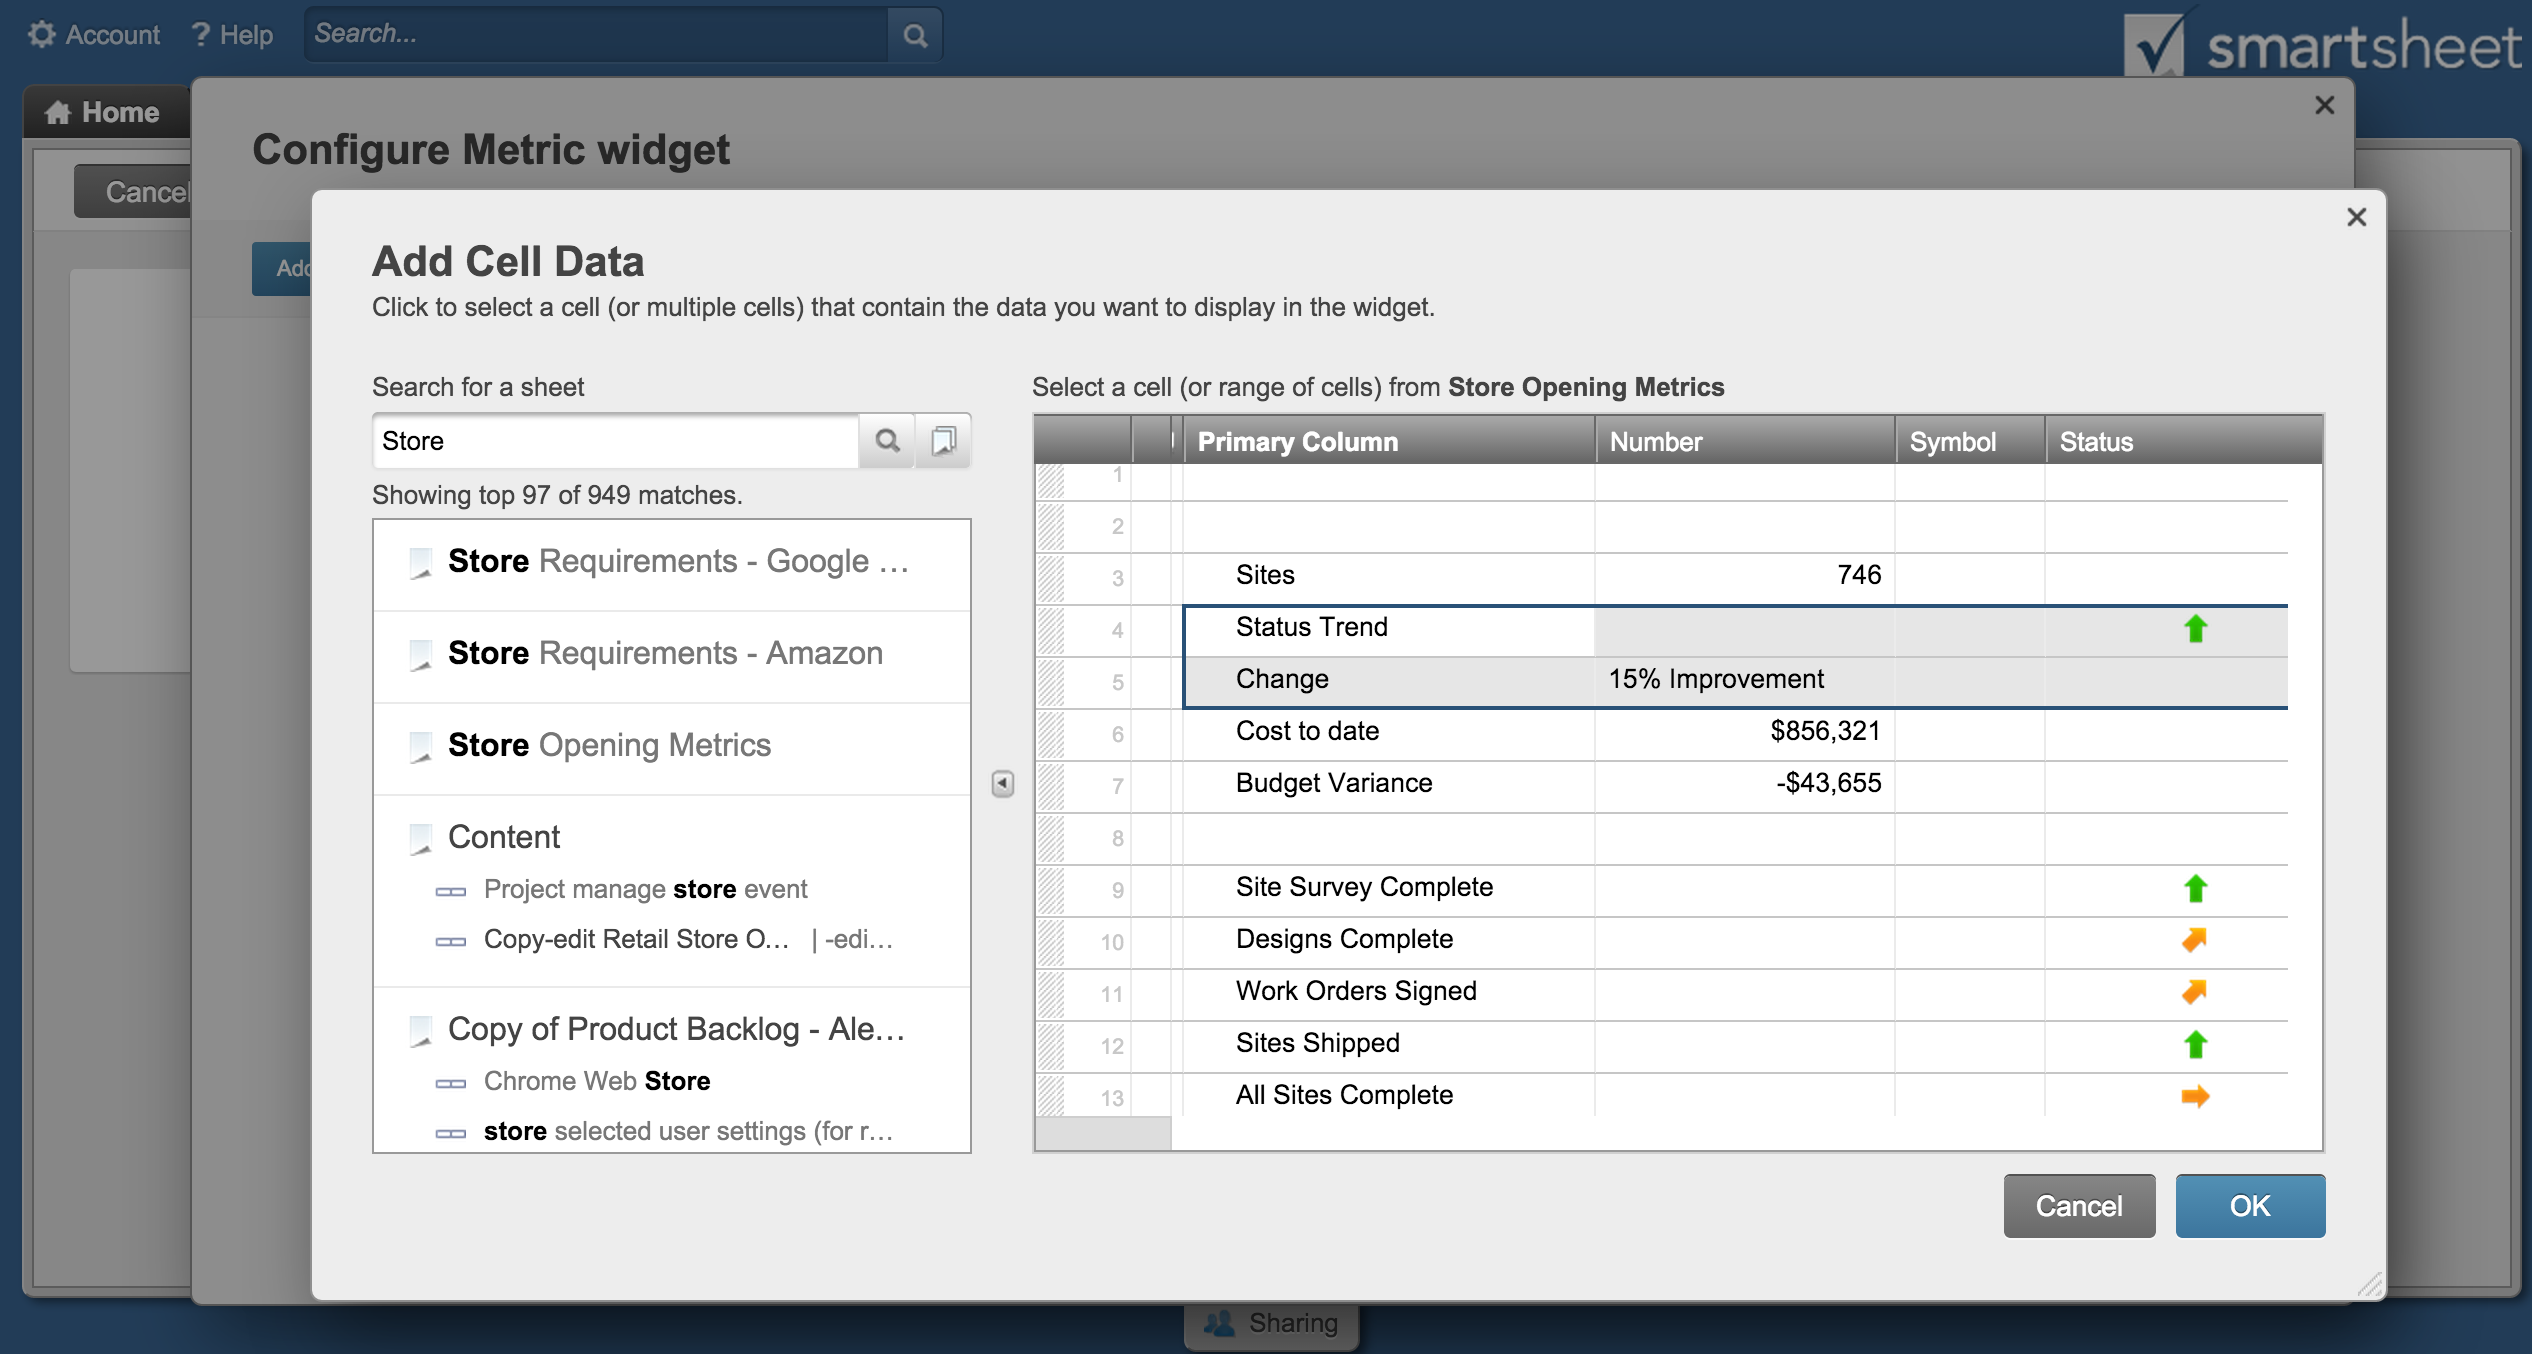 how to set up a project management dashboard in smartsheet